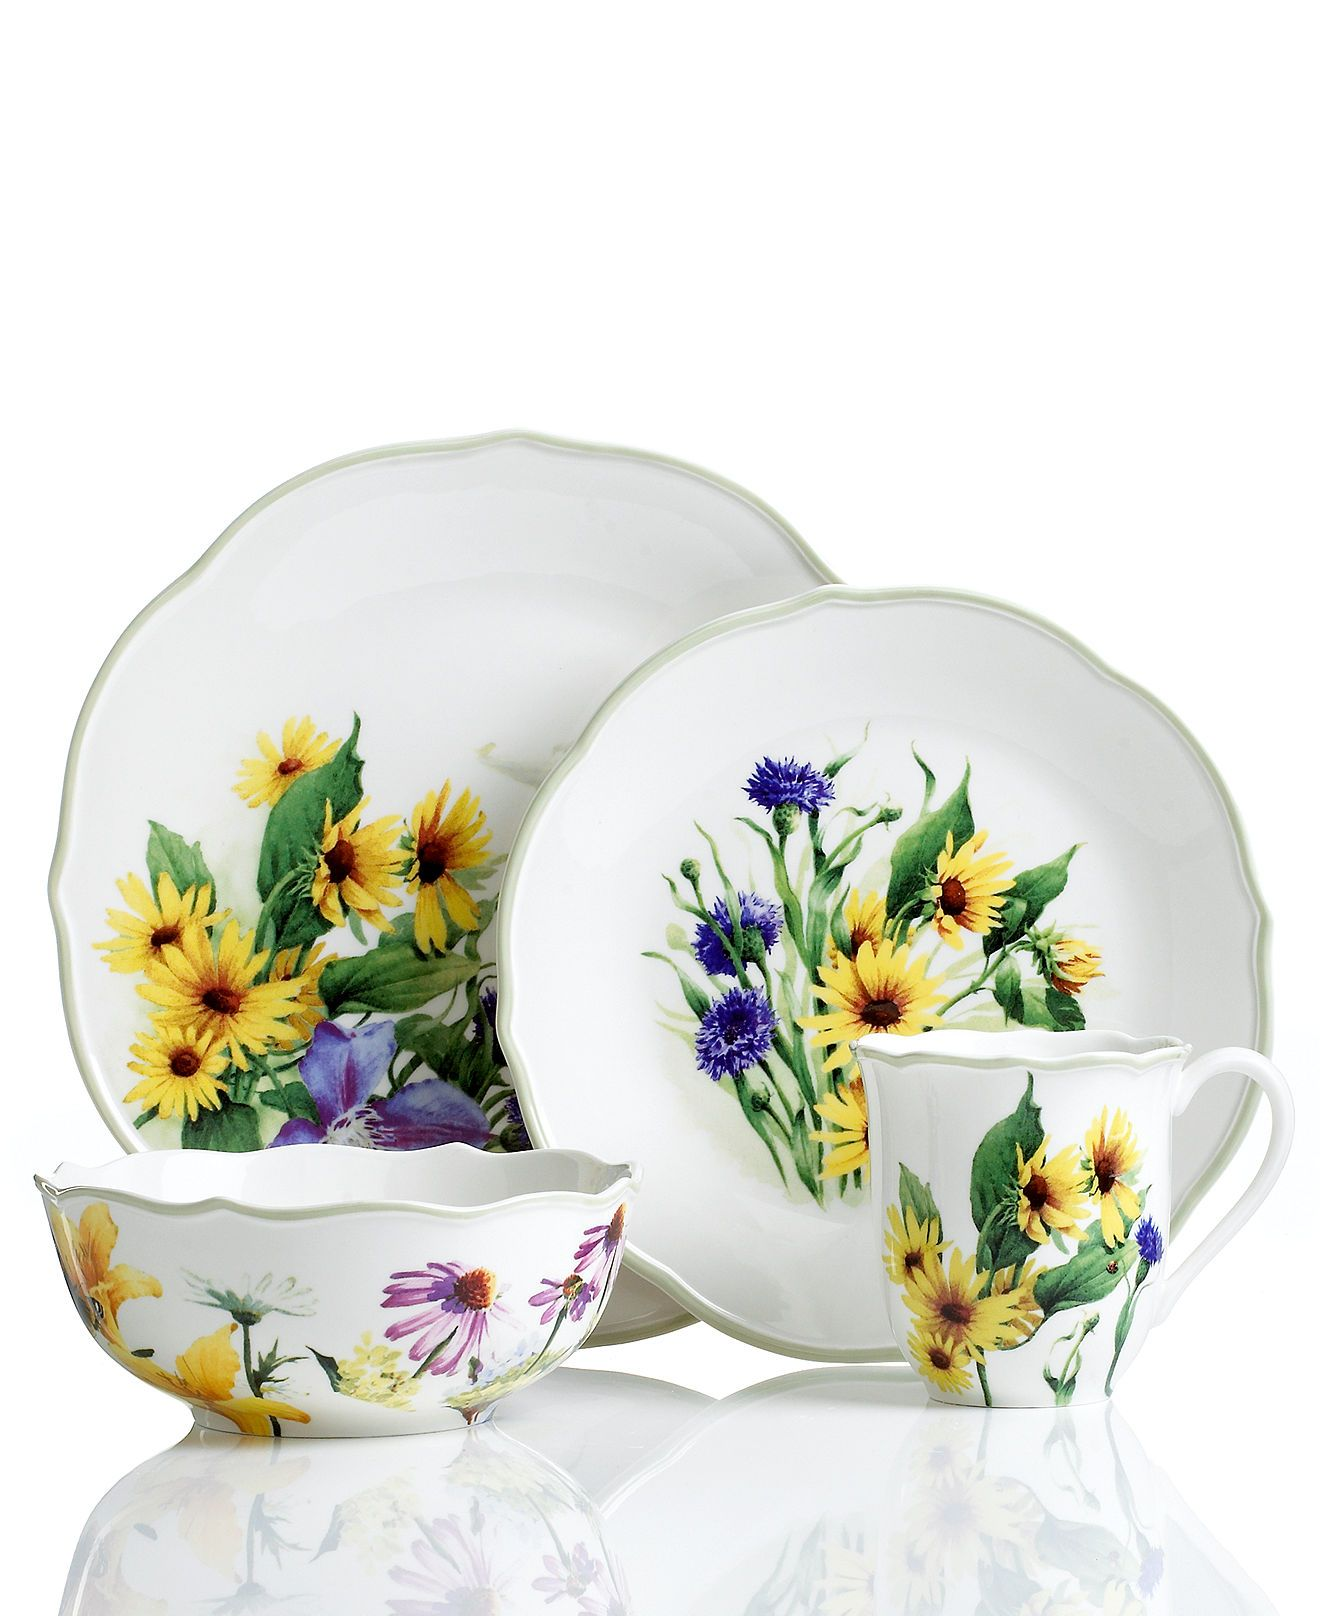 Floral Meadow Sunflower dishes from Lenox Dinnerware. Replacing my everyday dinnerware with these Floral Meadow Lenox UMMM  sc 1 st  Pinterest & Floral Meadow Sunflower dishes from Lenox Dinnerware. Replacing my ...